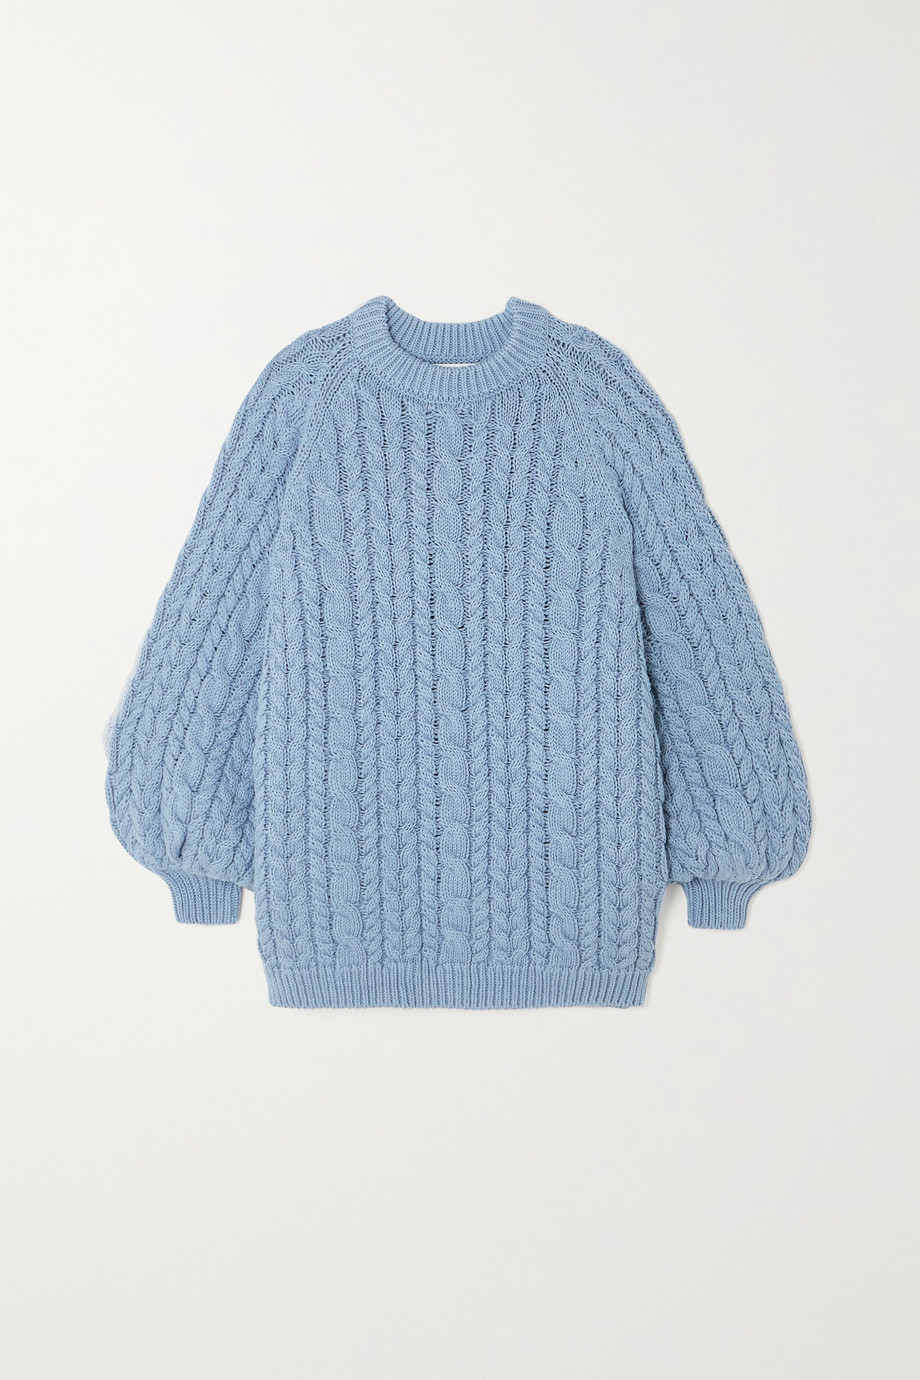 MR MITTENS Oversized cable-knit cotton sweater